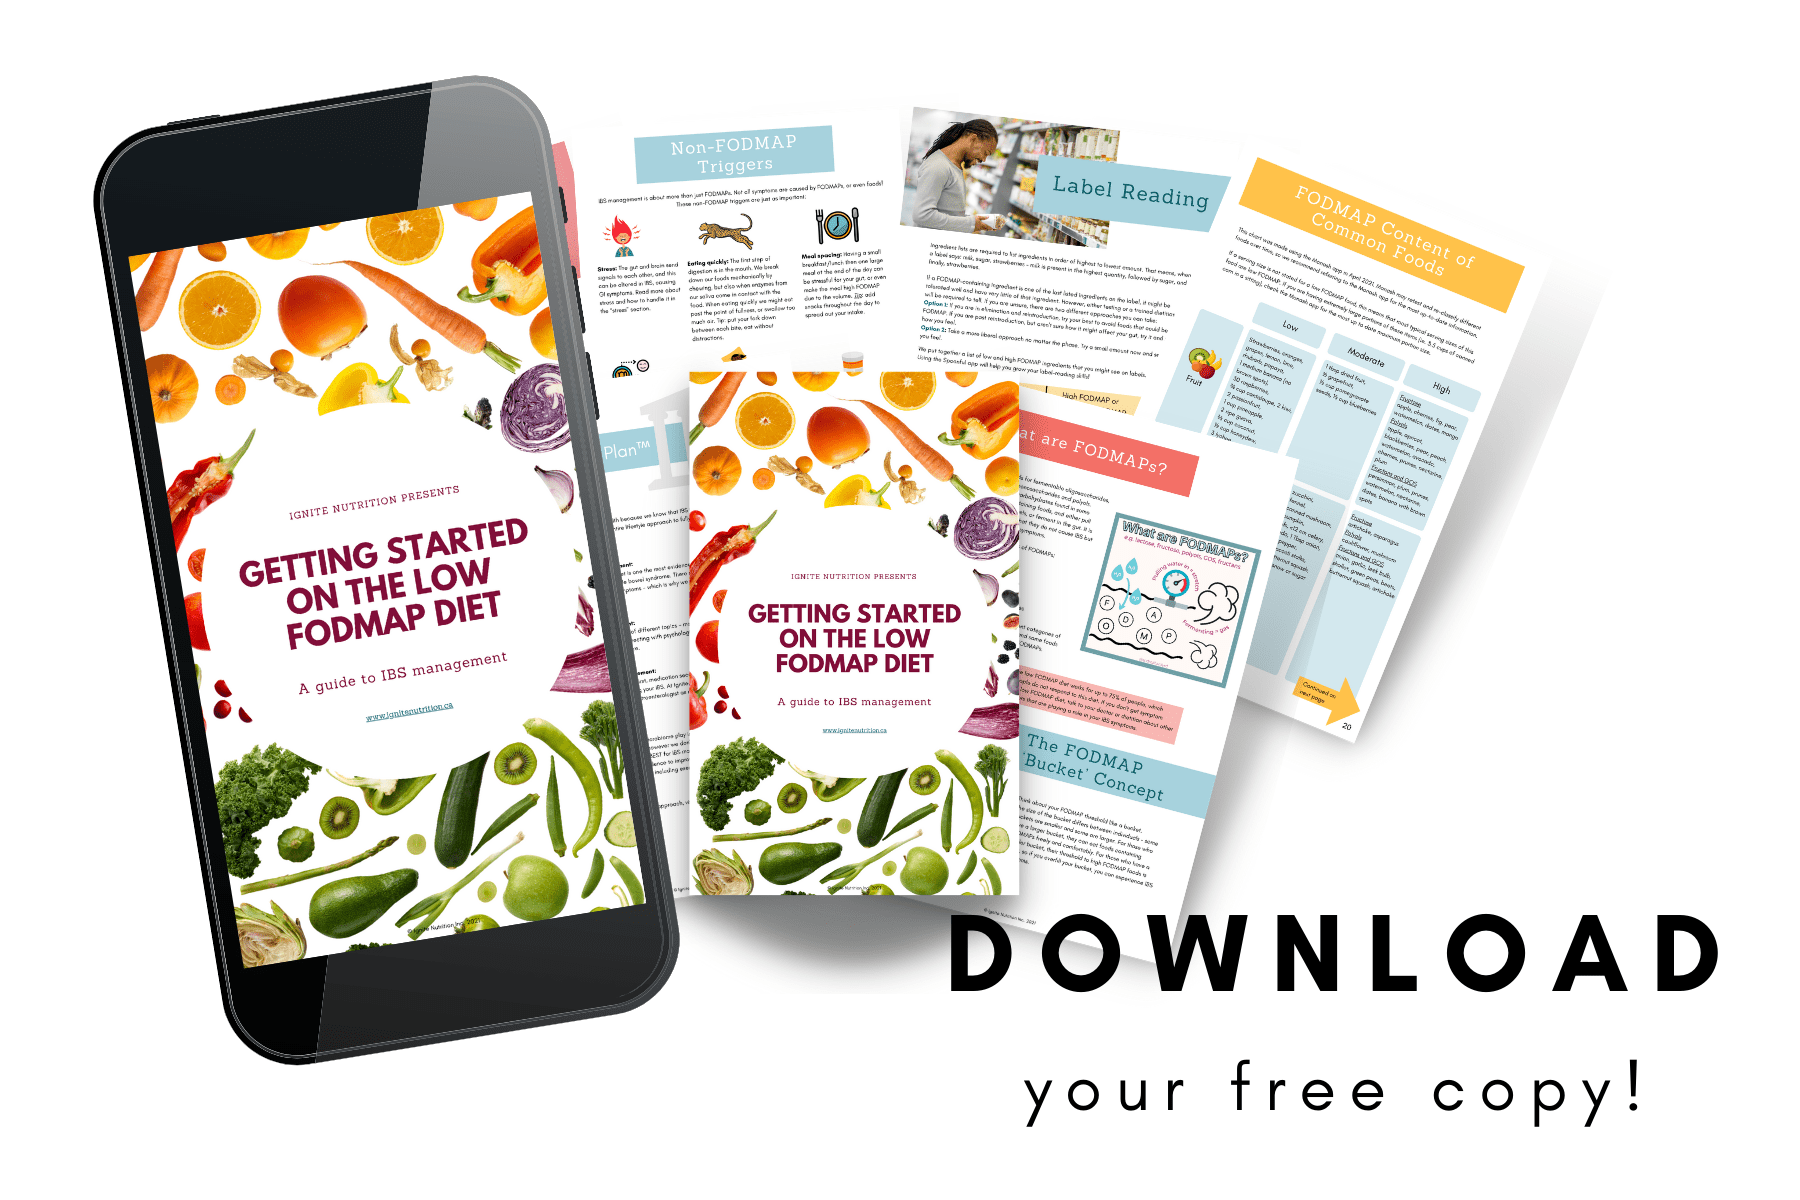 Getting started on the Low FODMAP diet? Get our free dietitian-approved ebook for ALL things Low FODMAP - including a high and Low FODMAP list broken down by categories, recipes, menu plan and so much more. Created by Ignite Nutrition Canada's top digestive health dietitians - Monash trained!